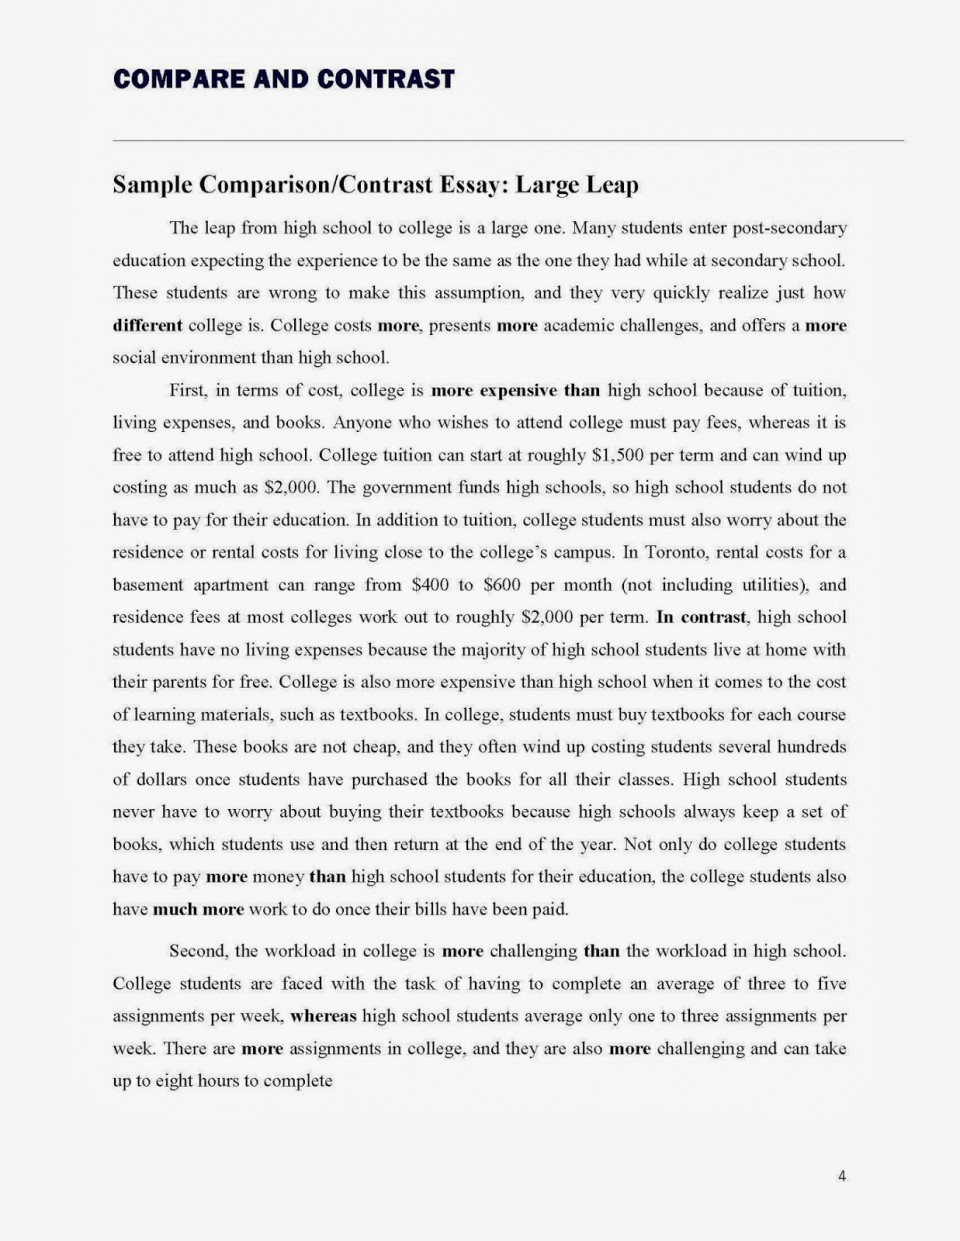 006 Comparison Contrast Essay Topics Example Compare20and20contrast20essay Page 4 Magnificent Compare Ielts For Esl Students And Middle School 960